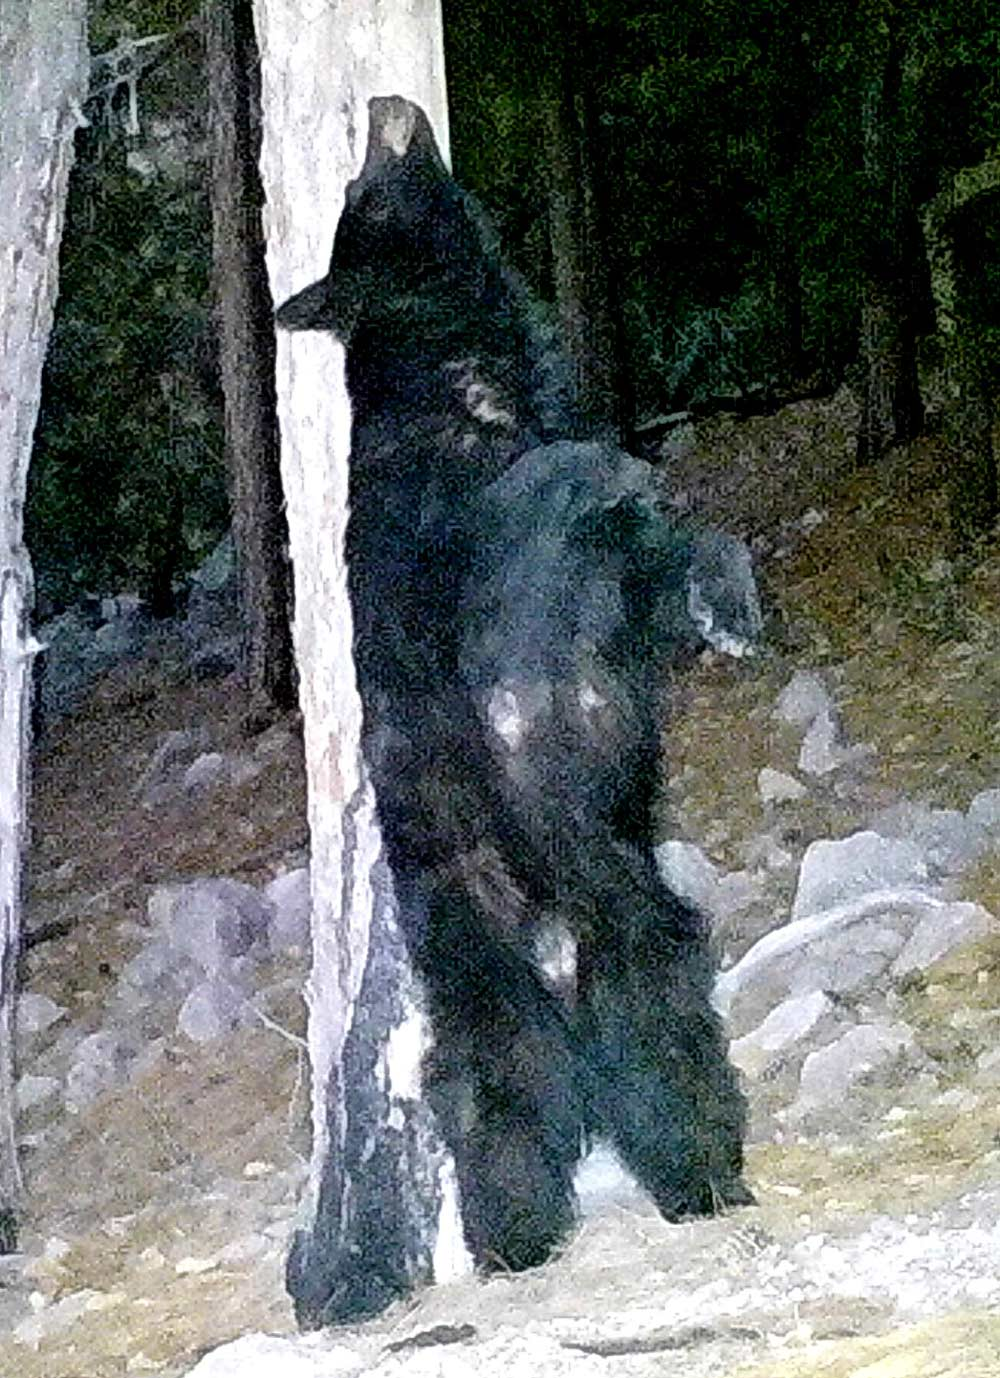 A bear scratches its back on a tree.